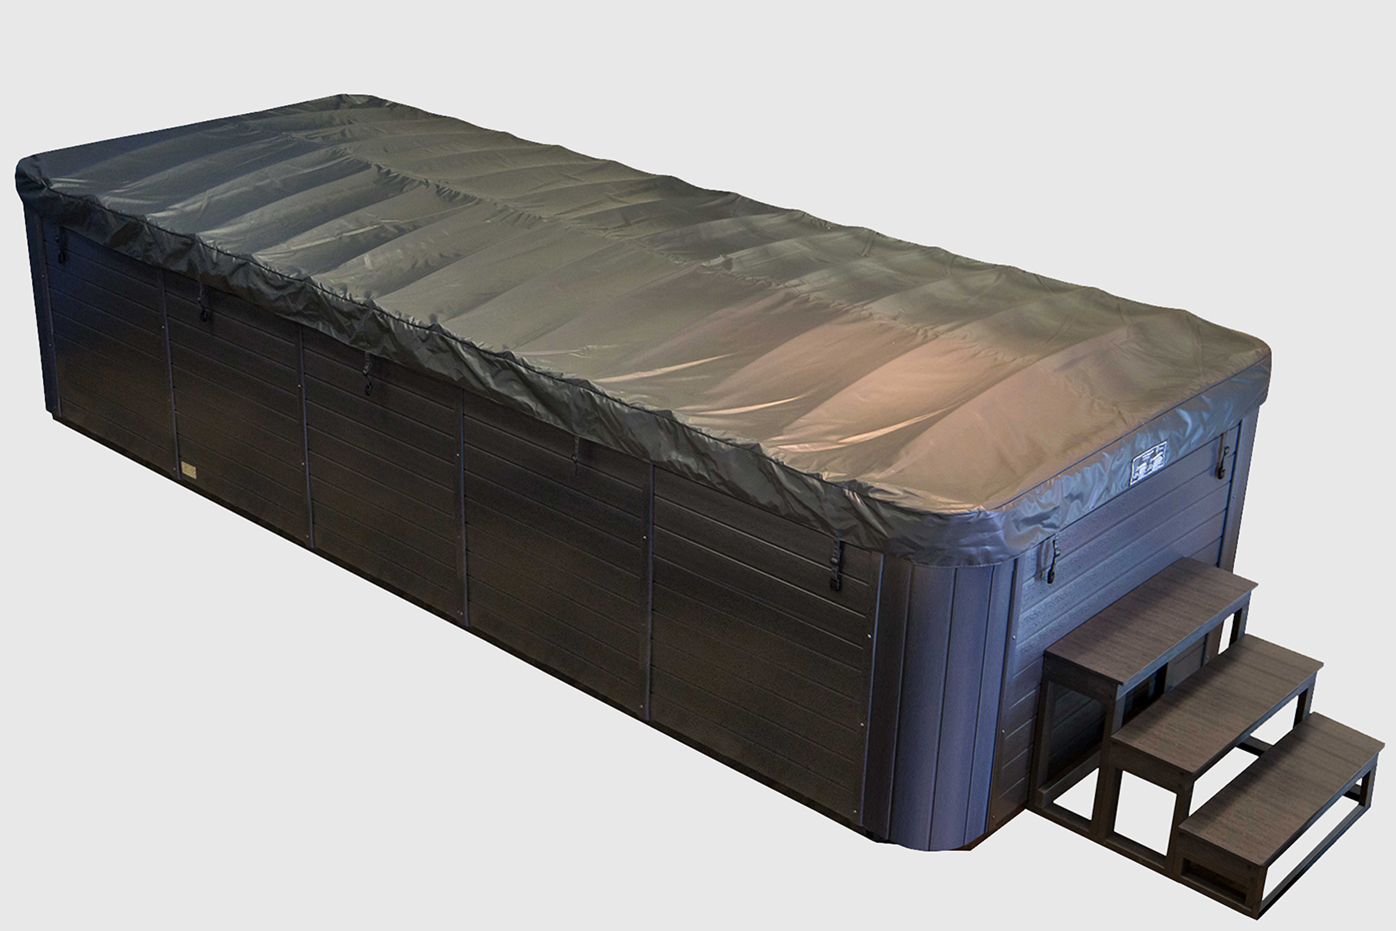 roll up cover for exercise pools